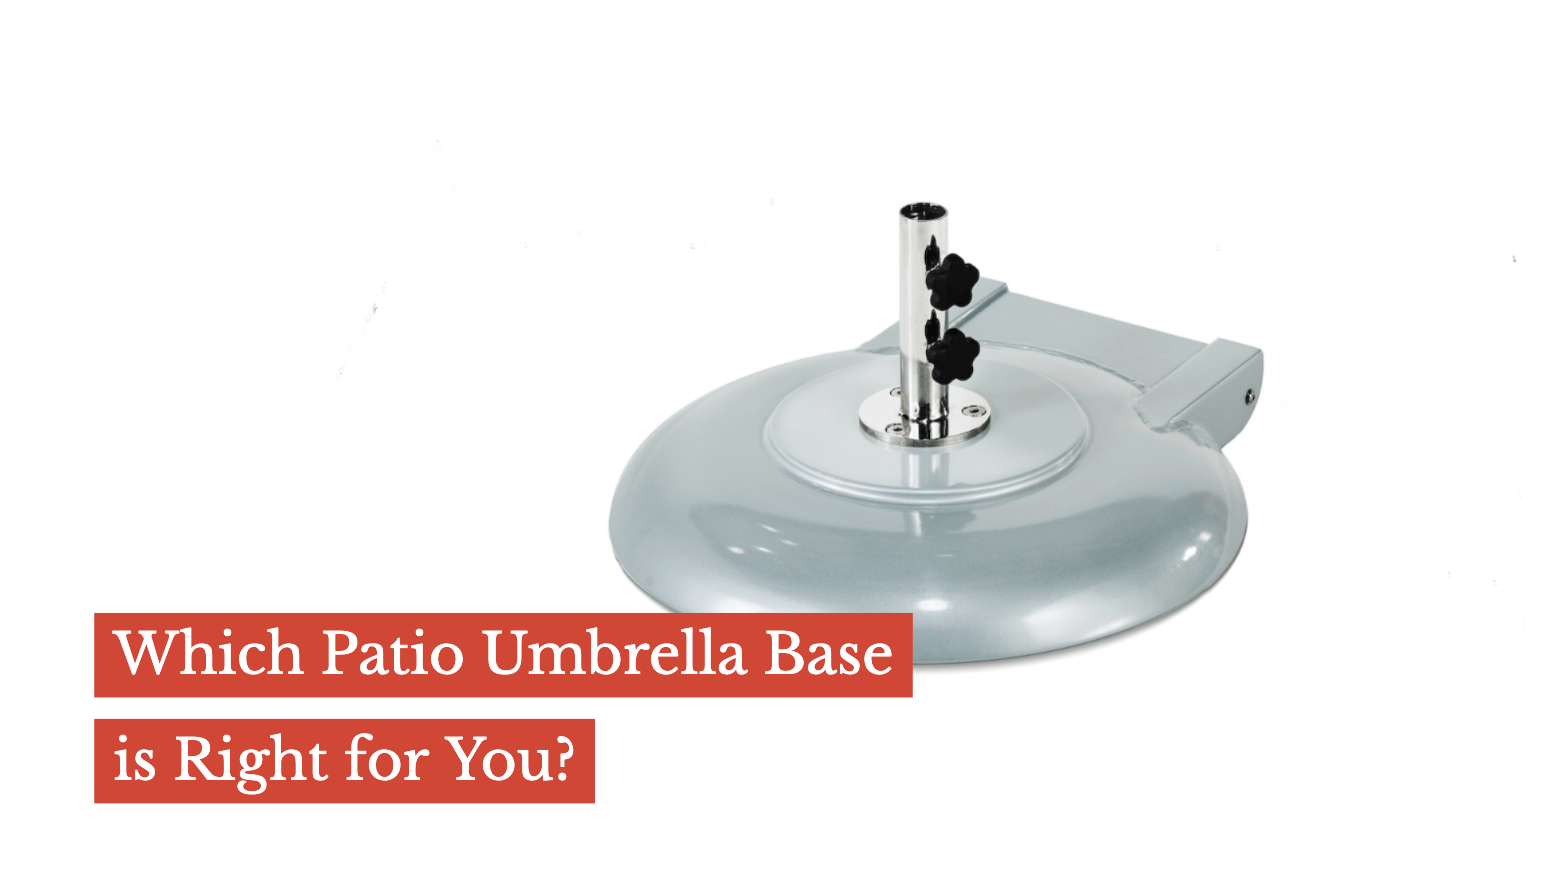 Which Patio Umbrella Base is Right for You?